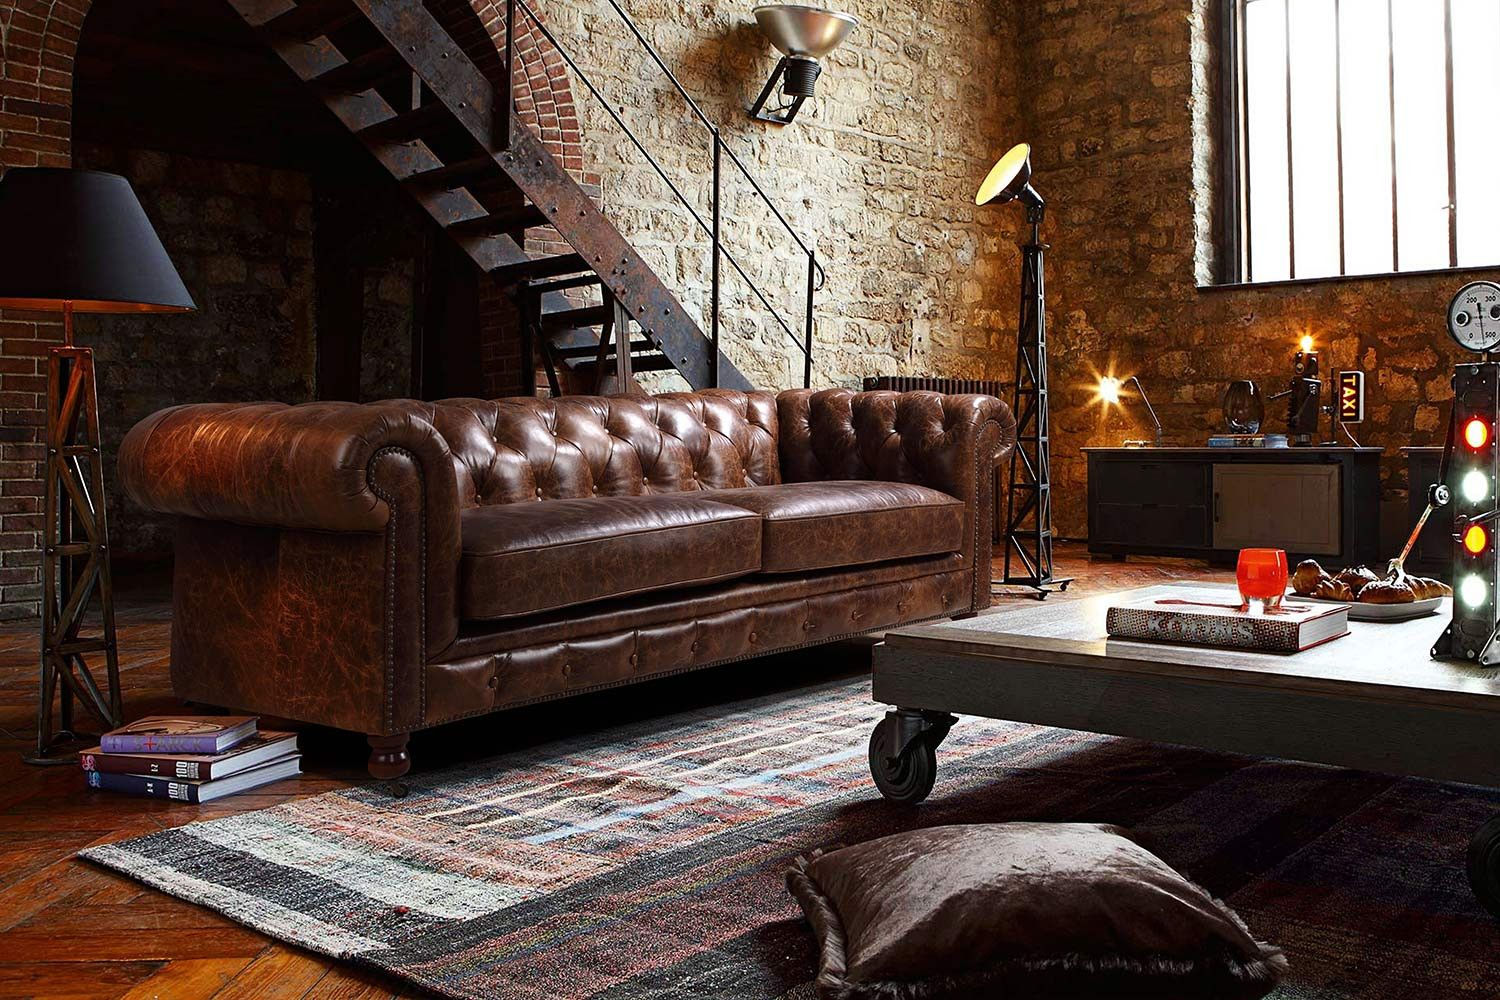 pee kensington leather sofa gunstige bettsofas lipo chesterfield by rose and moore in an